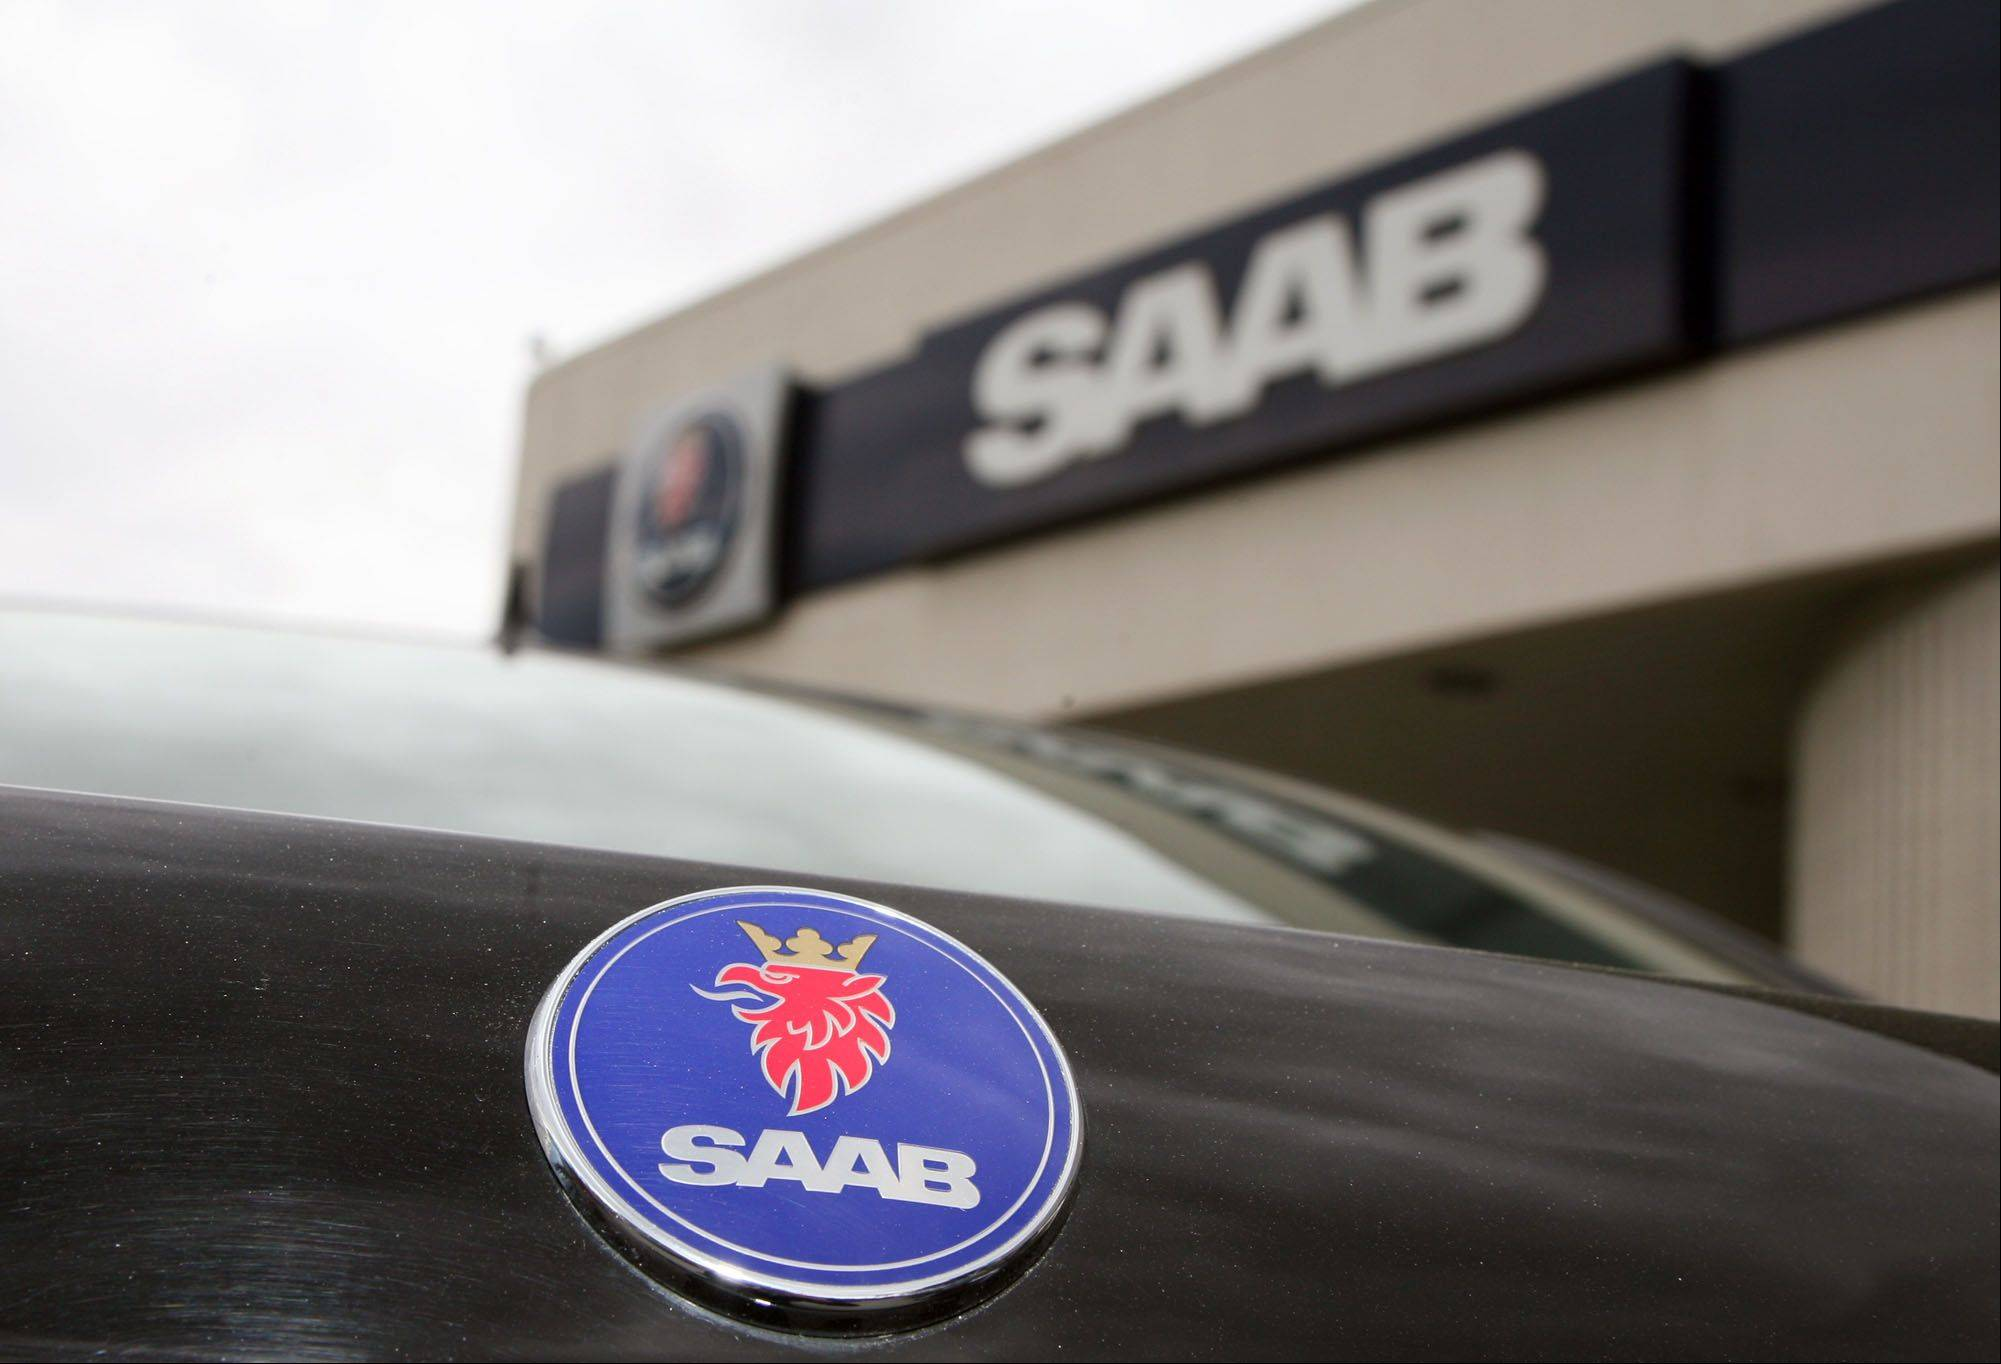 Spyker, which bought Saab from General Motors in 2010, alleges GM unfairly blocked deals that would have seen a Chinese manufacturer take over Saab production and save it from bankruptcy. It says GM feared competing with Saab in China.